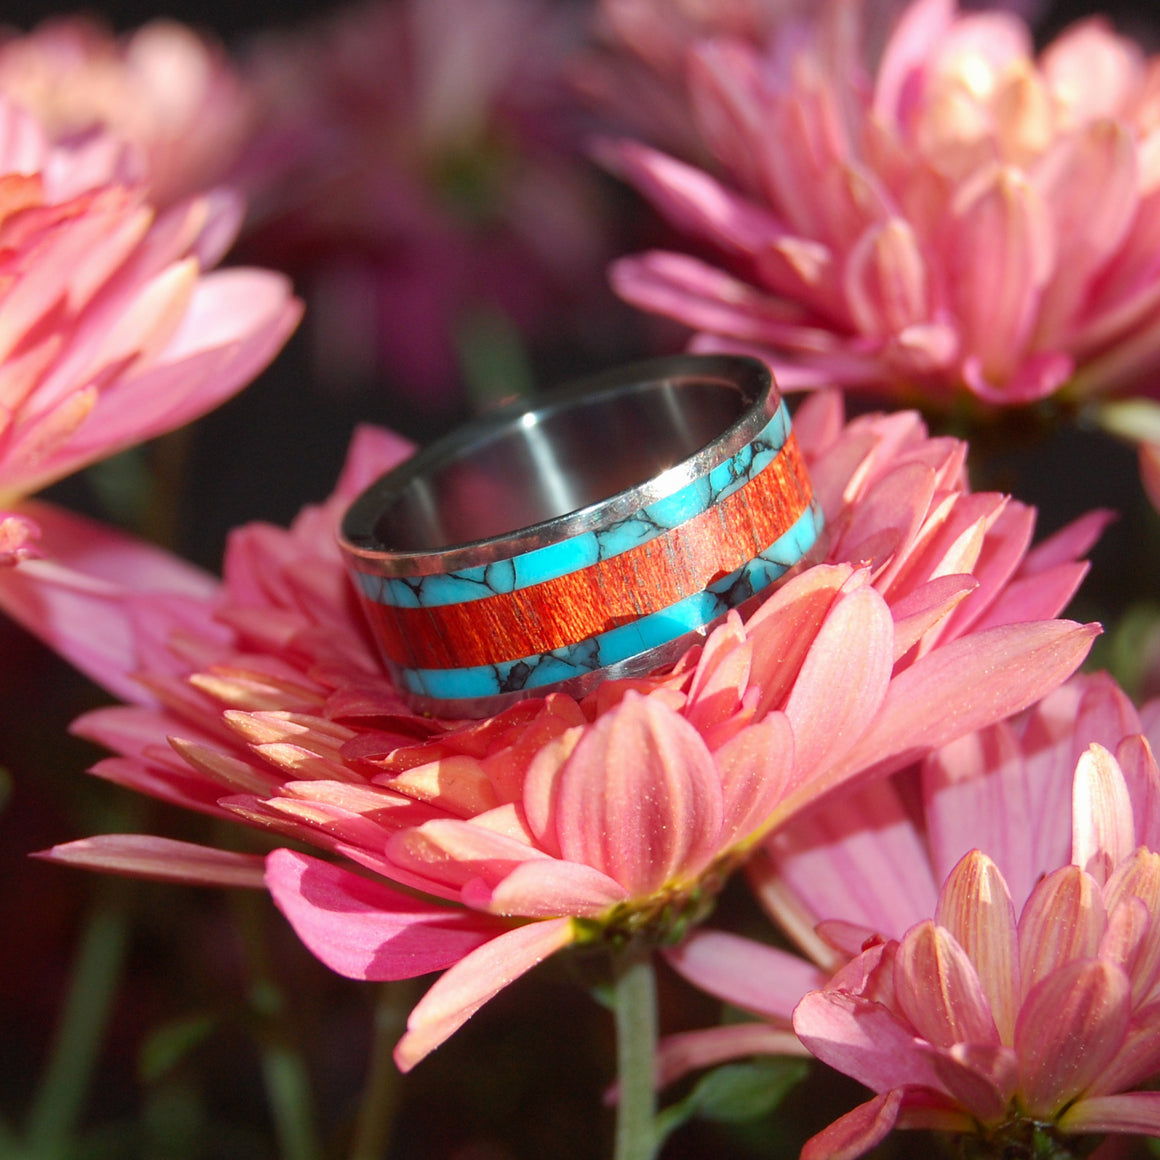 The Ring That Jack Built | Turquoise and Bloodwood - Titanium Wedding Ring